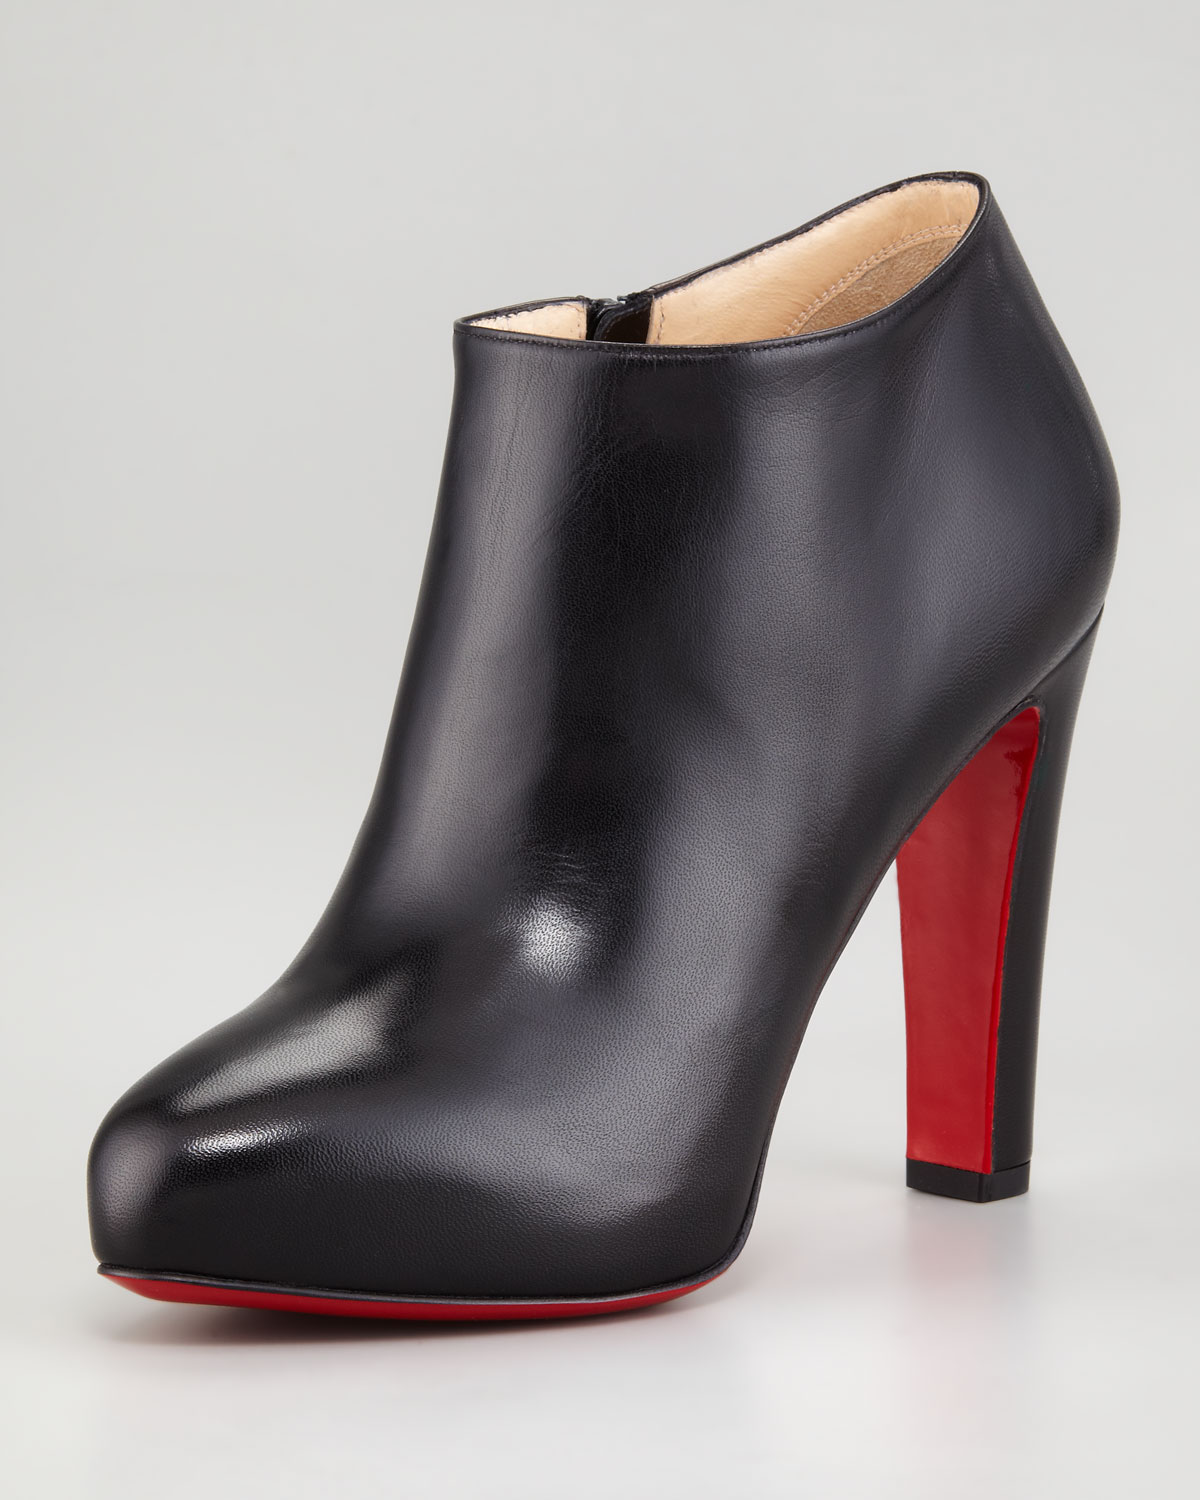 f367ffa5701b Christian Louboutin Vicky Napa Ankle Bootie in Black - Lyst